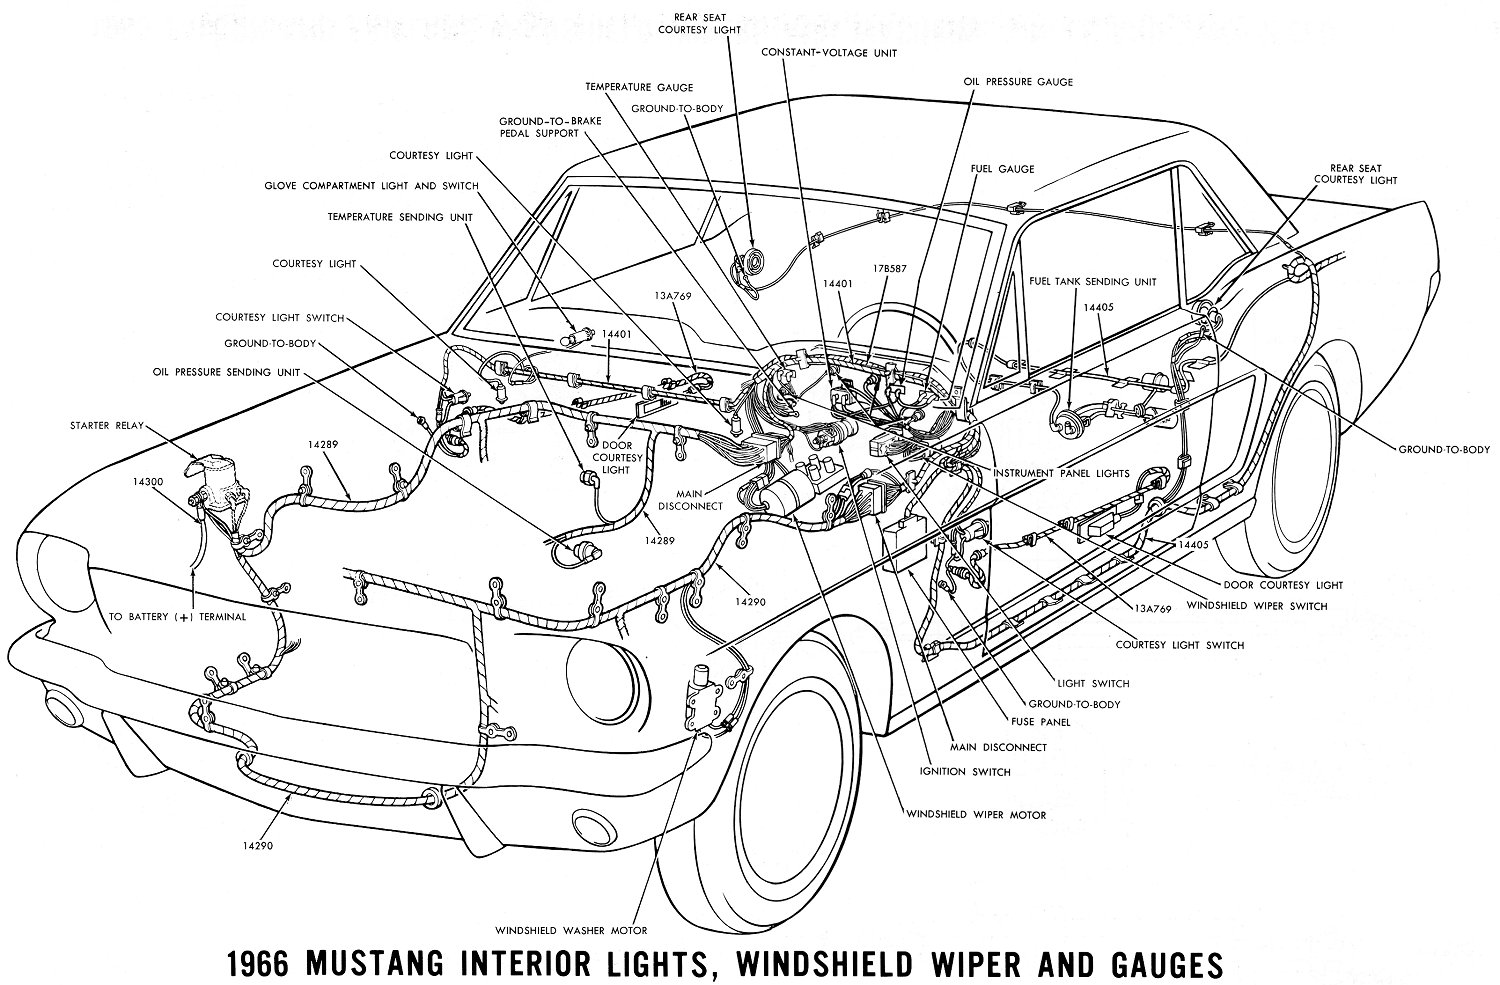 [DIAGRAM_3US]  1966 Mustang Wiring Diagrams - Average Joe Restoration | 1966 Mustang Color Wiring Diagram |  | Average Joe Restoration